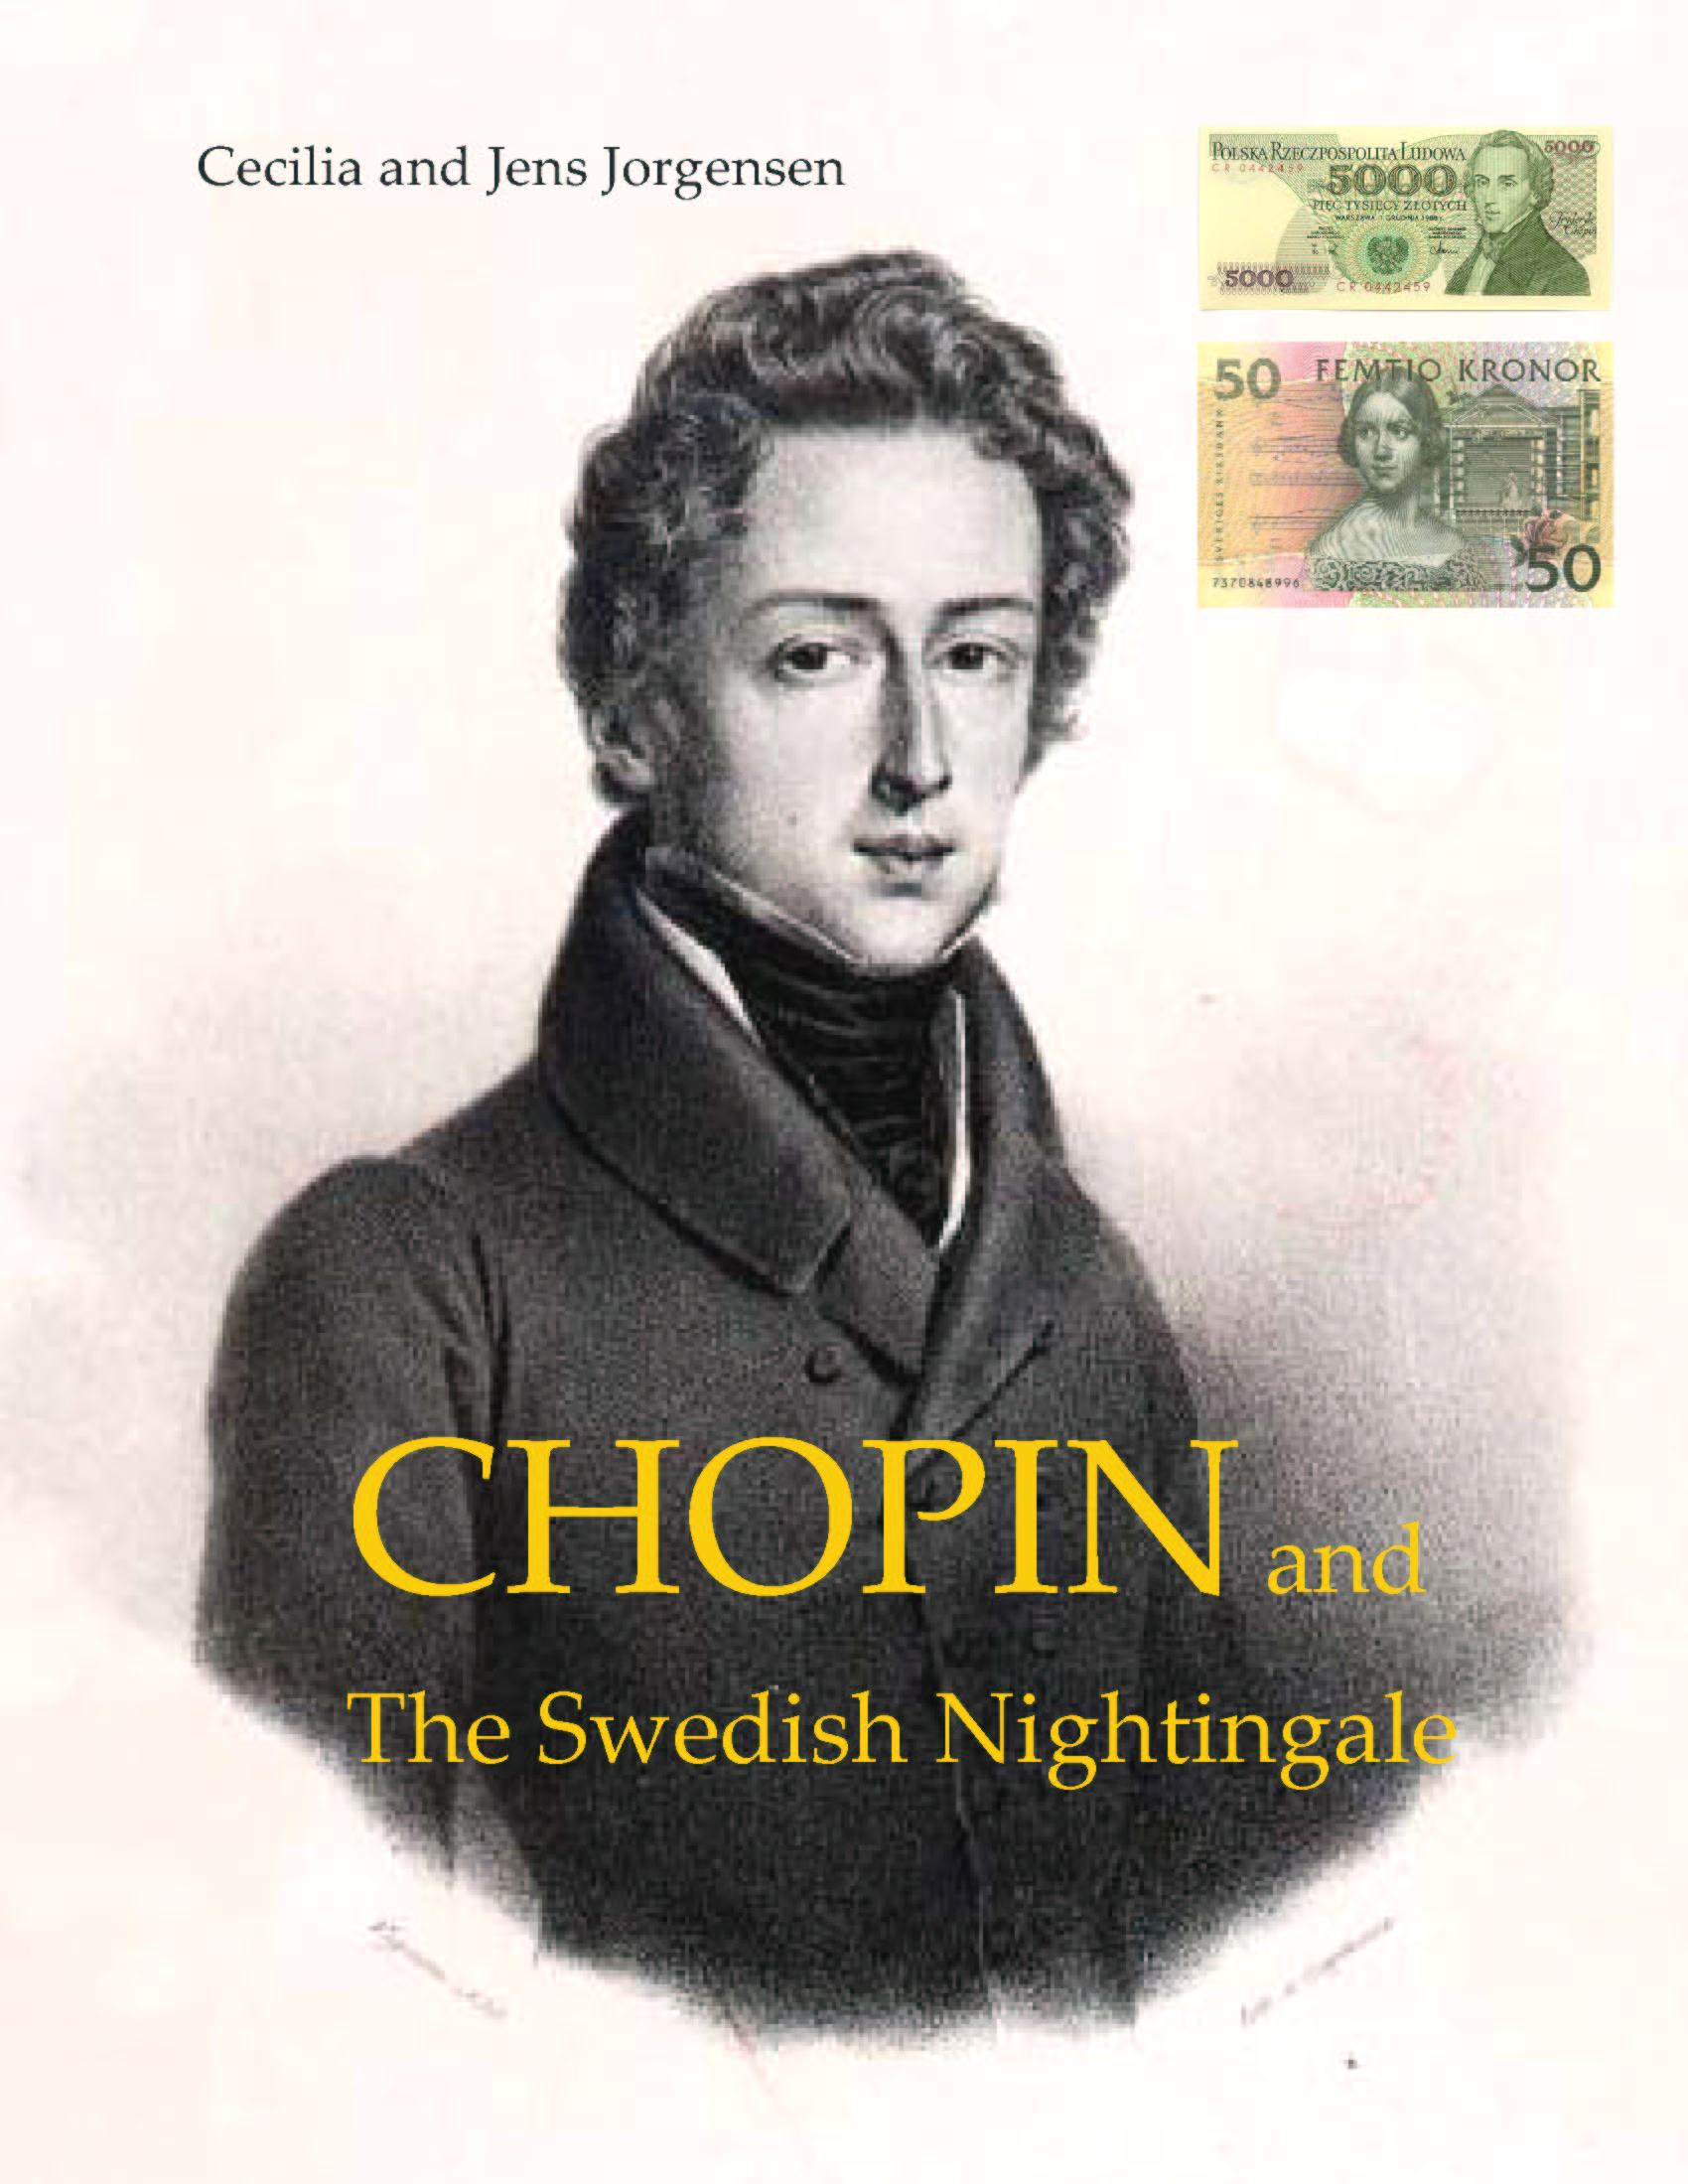 Chopin in 1833